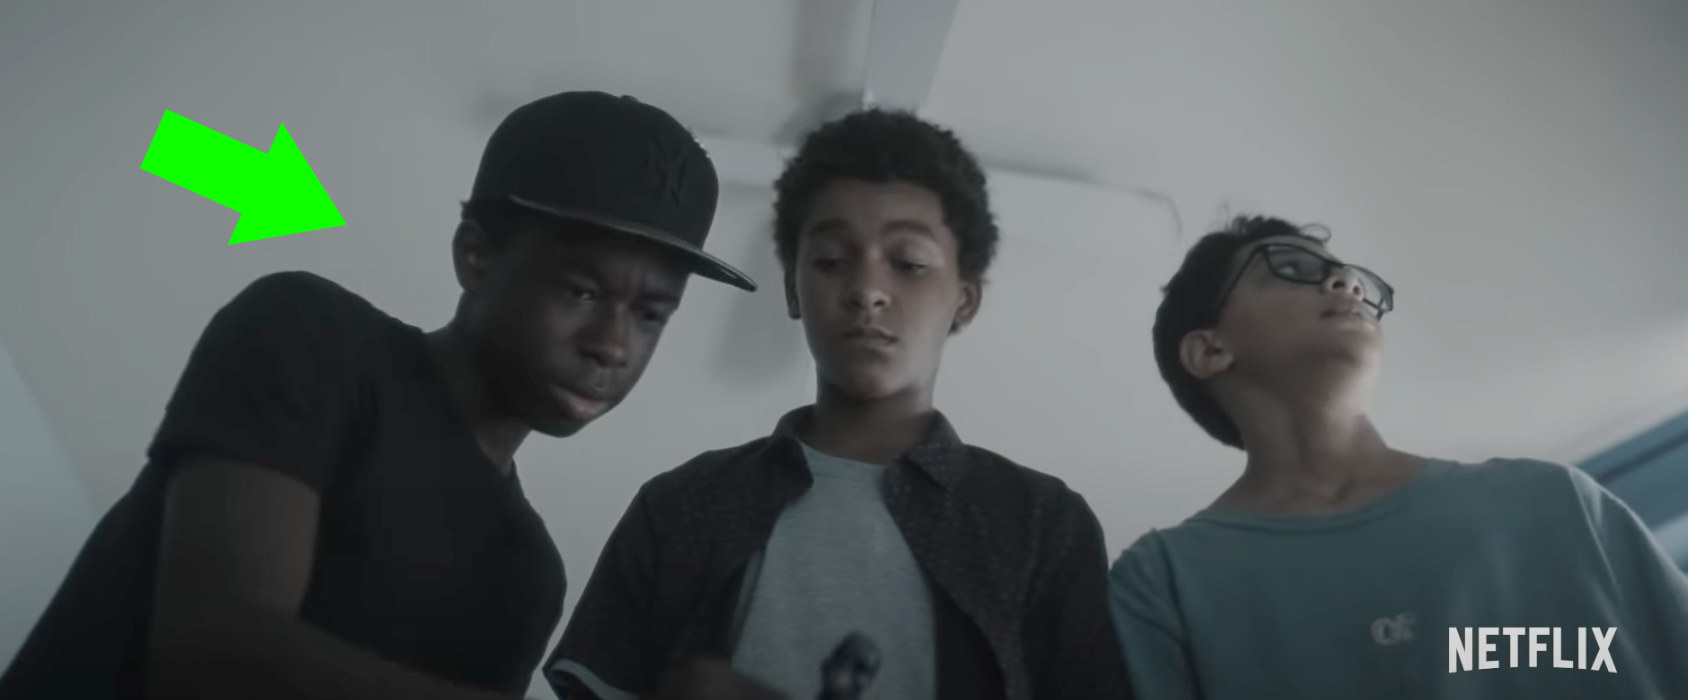 Bobby, Luis, and Miguel looking at something